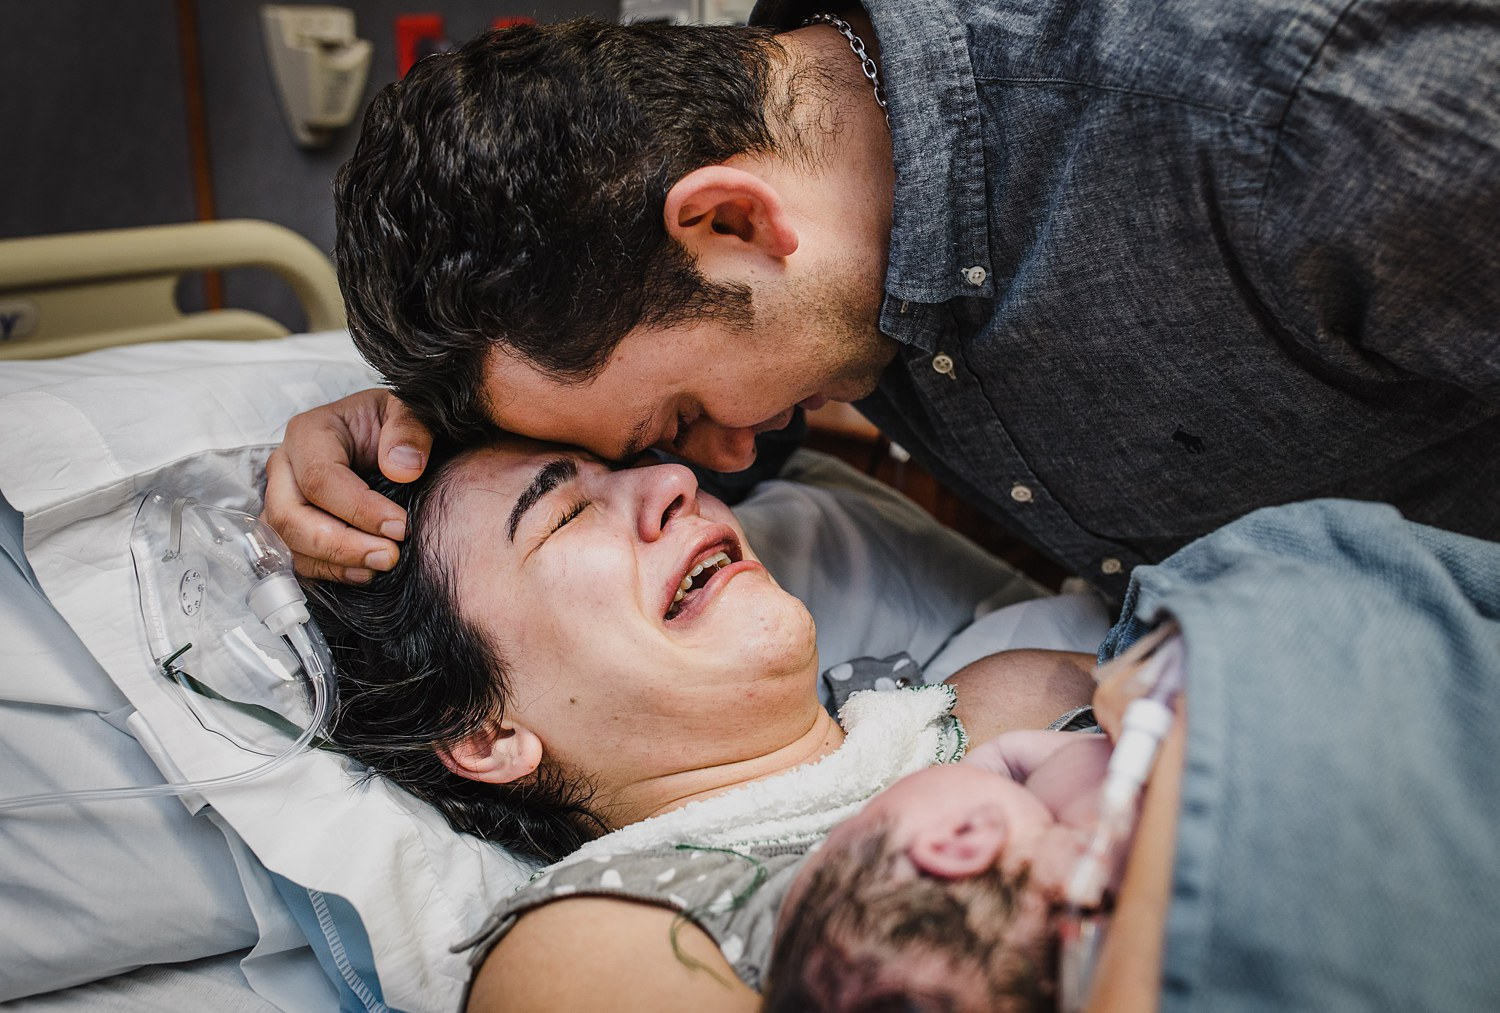 East Bay birth photography story.